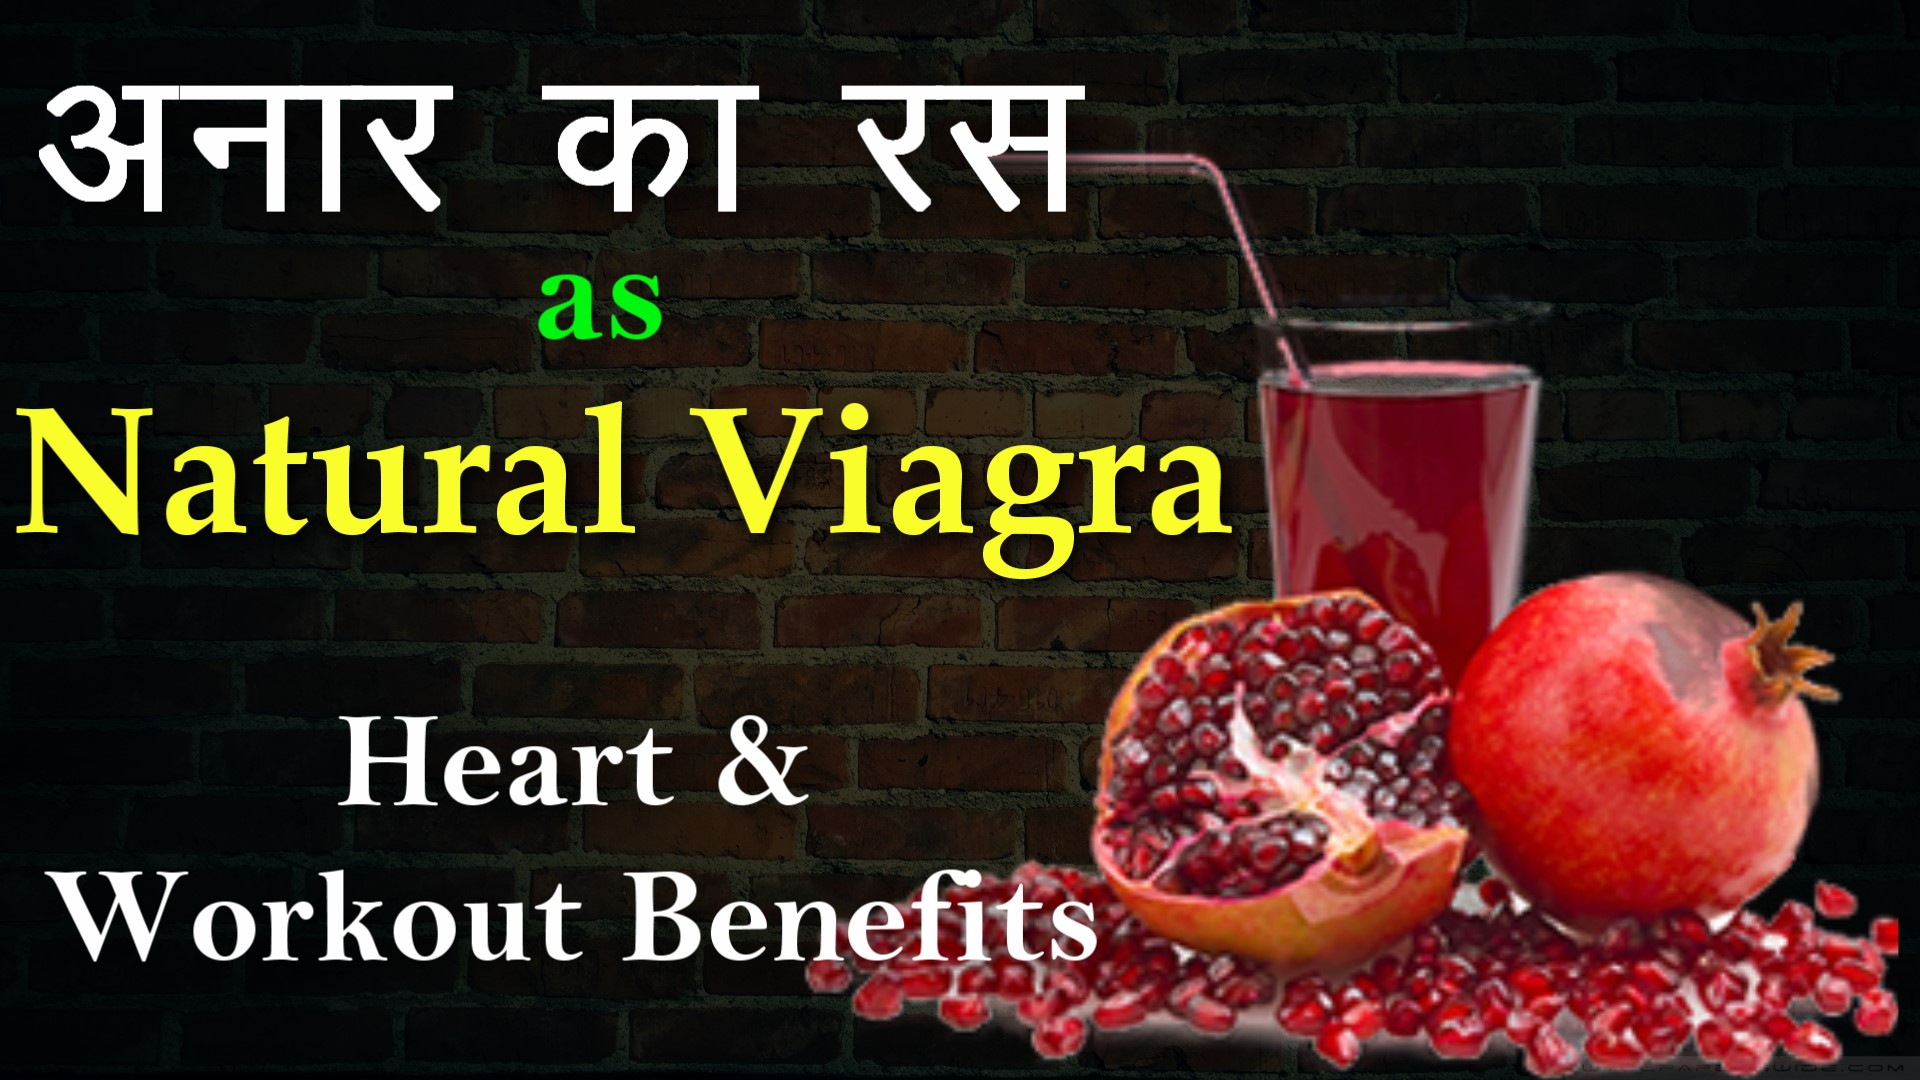 How to good in bed? Natural Viagra